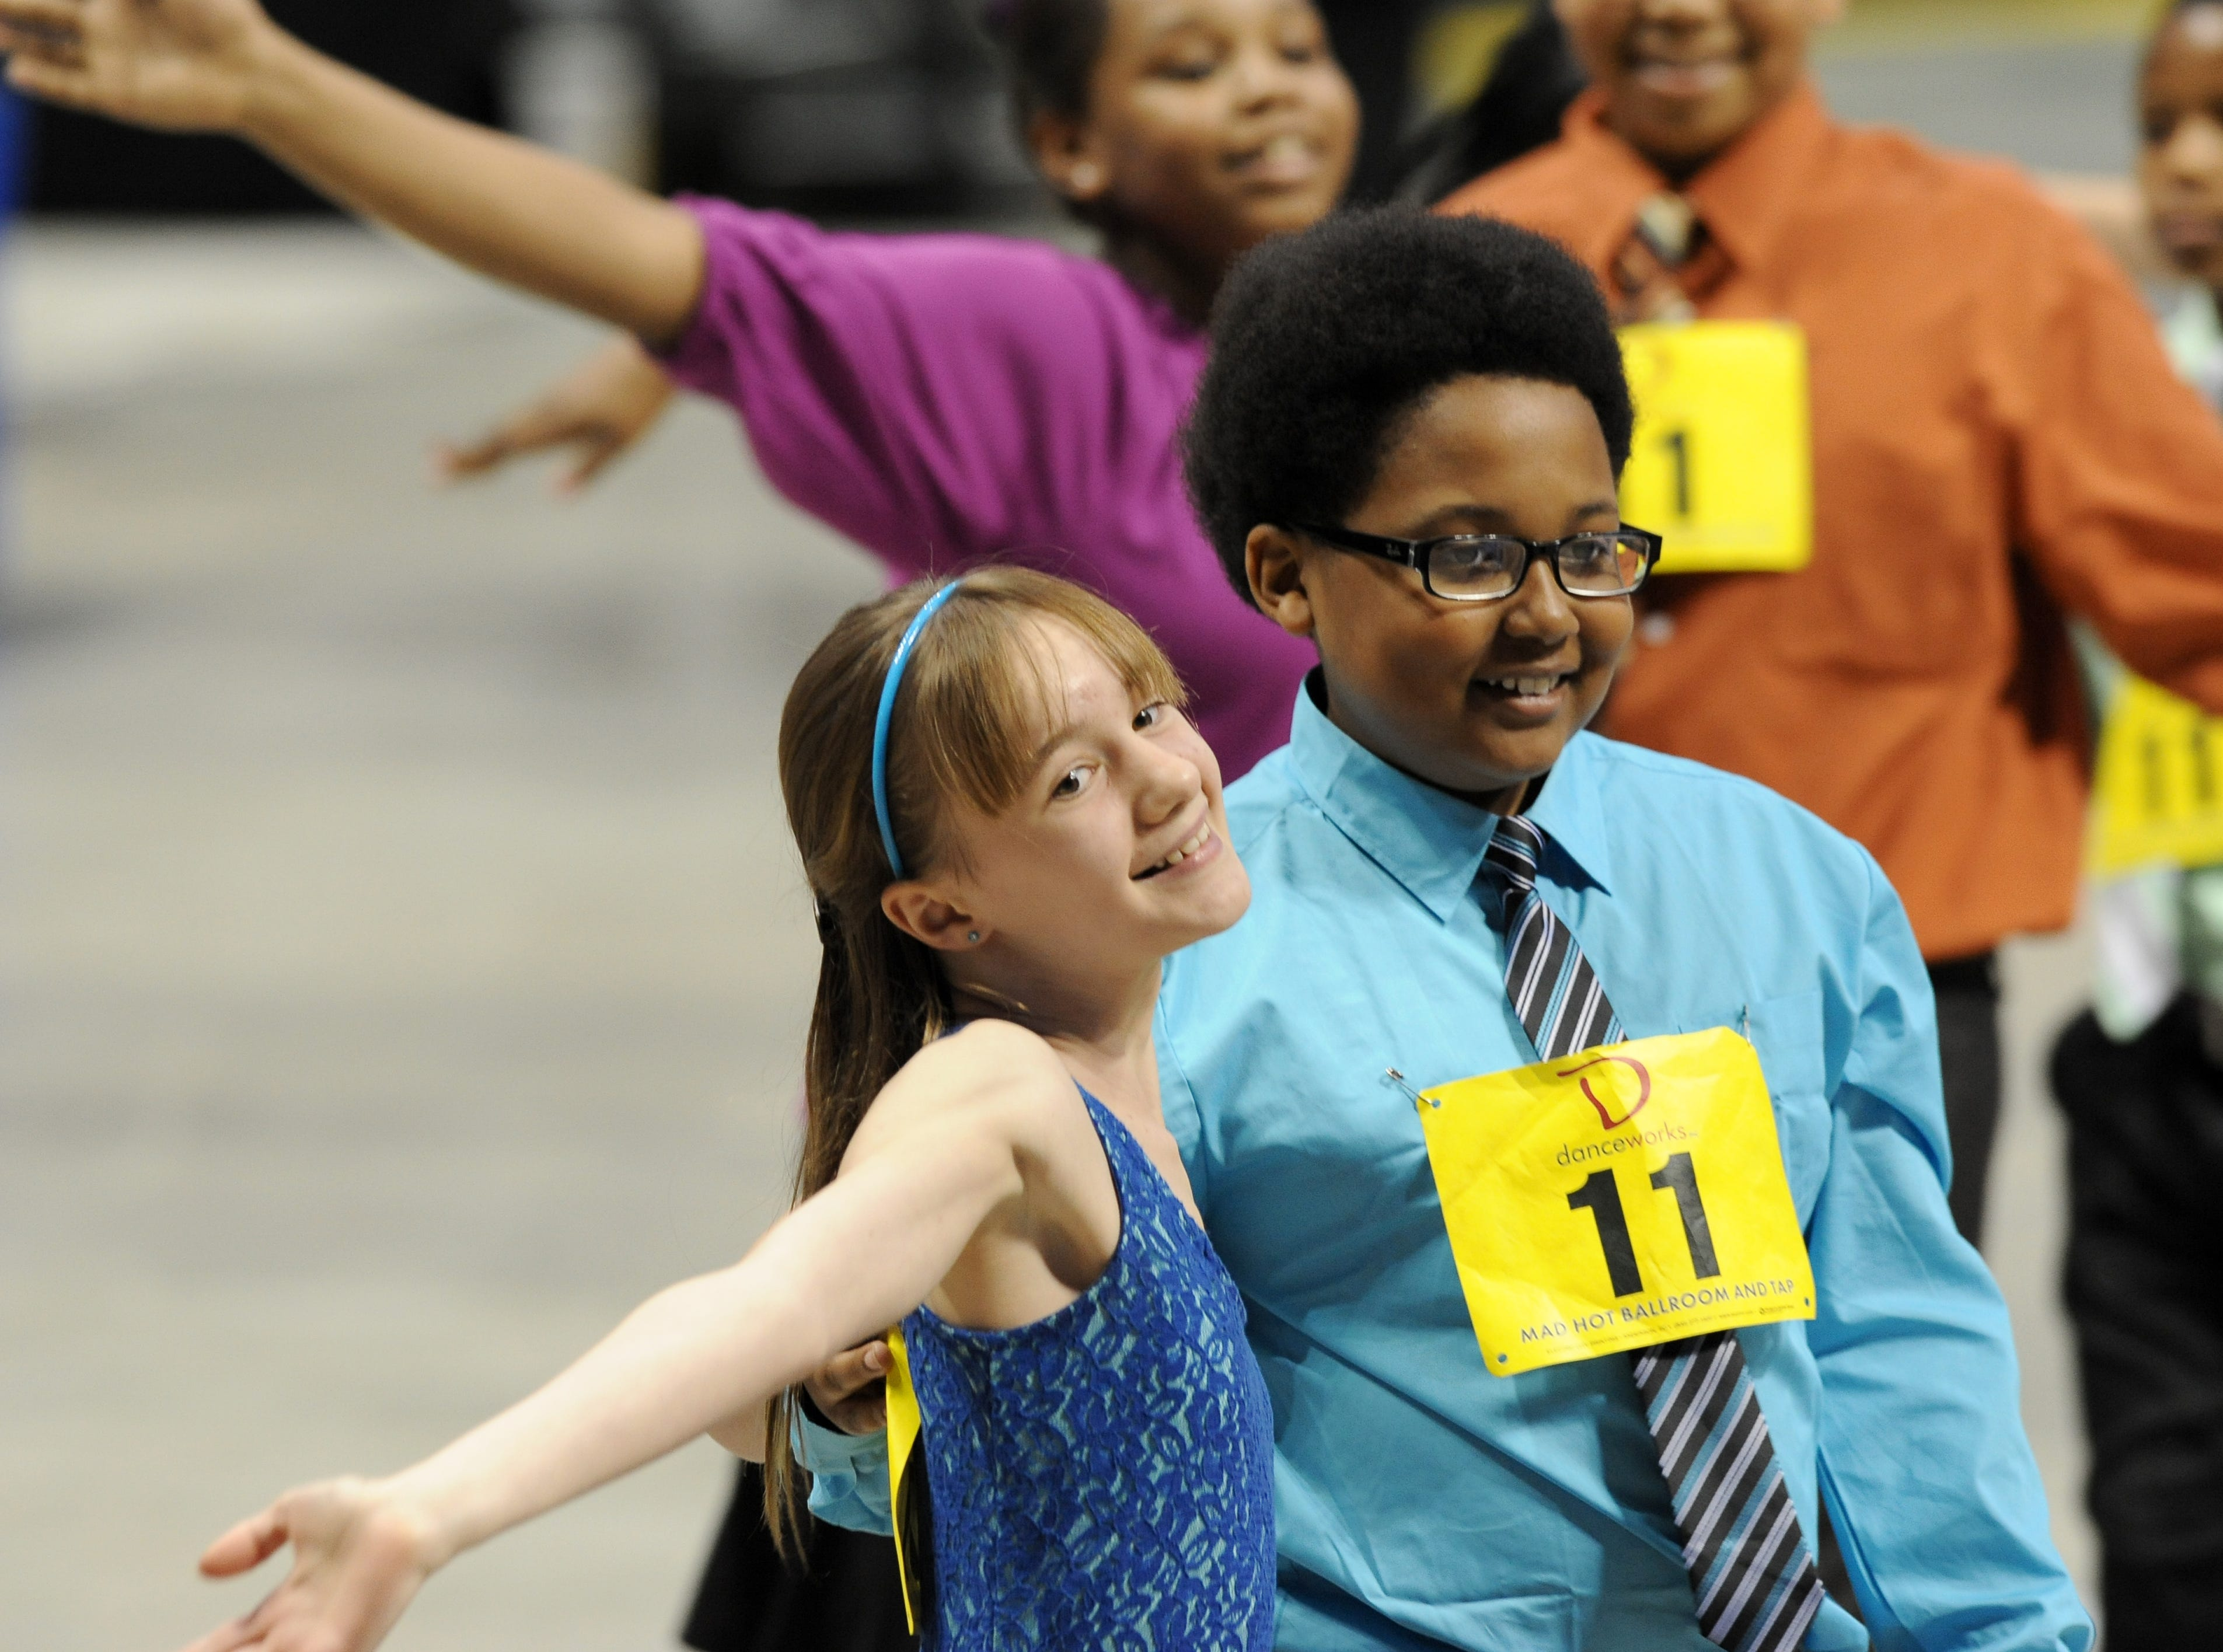 2013: Claire Gerlach, left, and partner Jalen Webster, right dance the foxtrot. Nearly 2,200 local students from 43 area schools perform and compete in the Mad Hot Ballroom show at the Bradley Center.